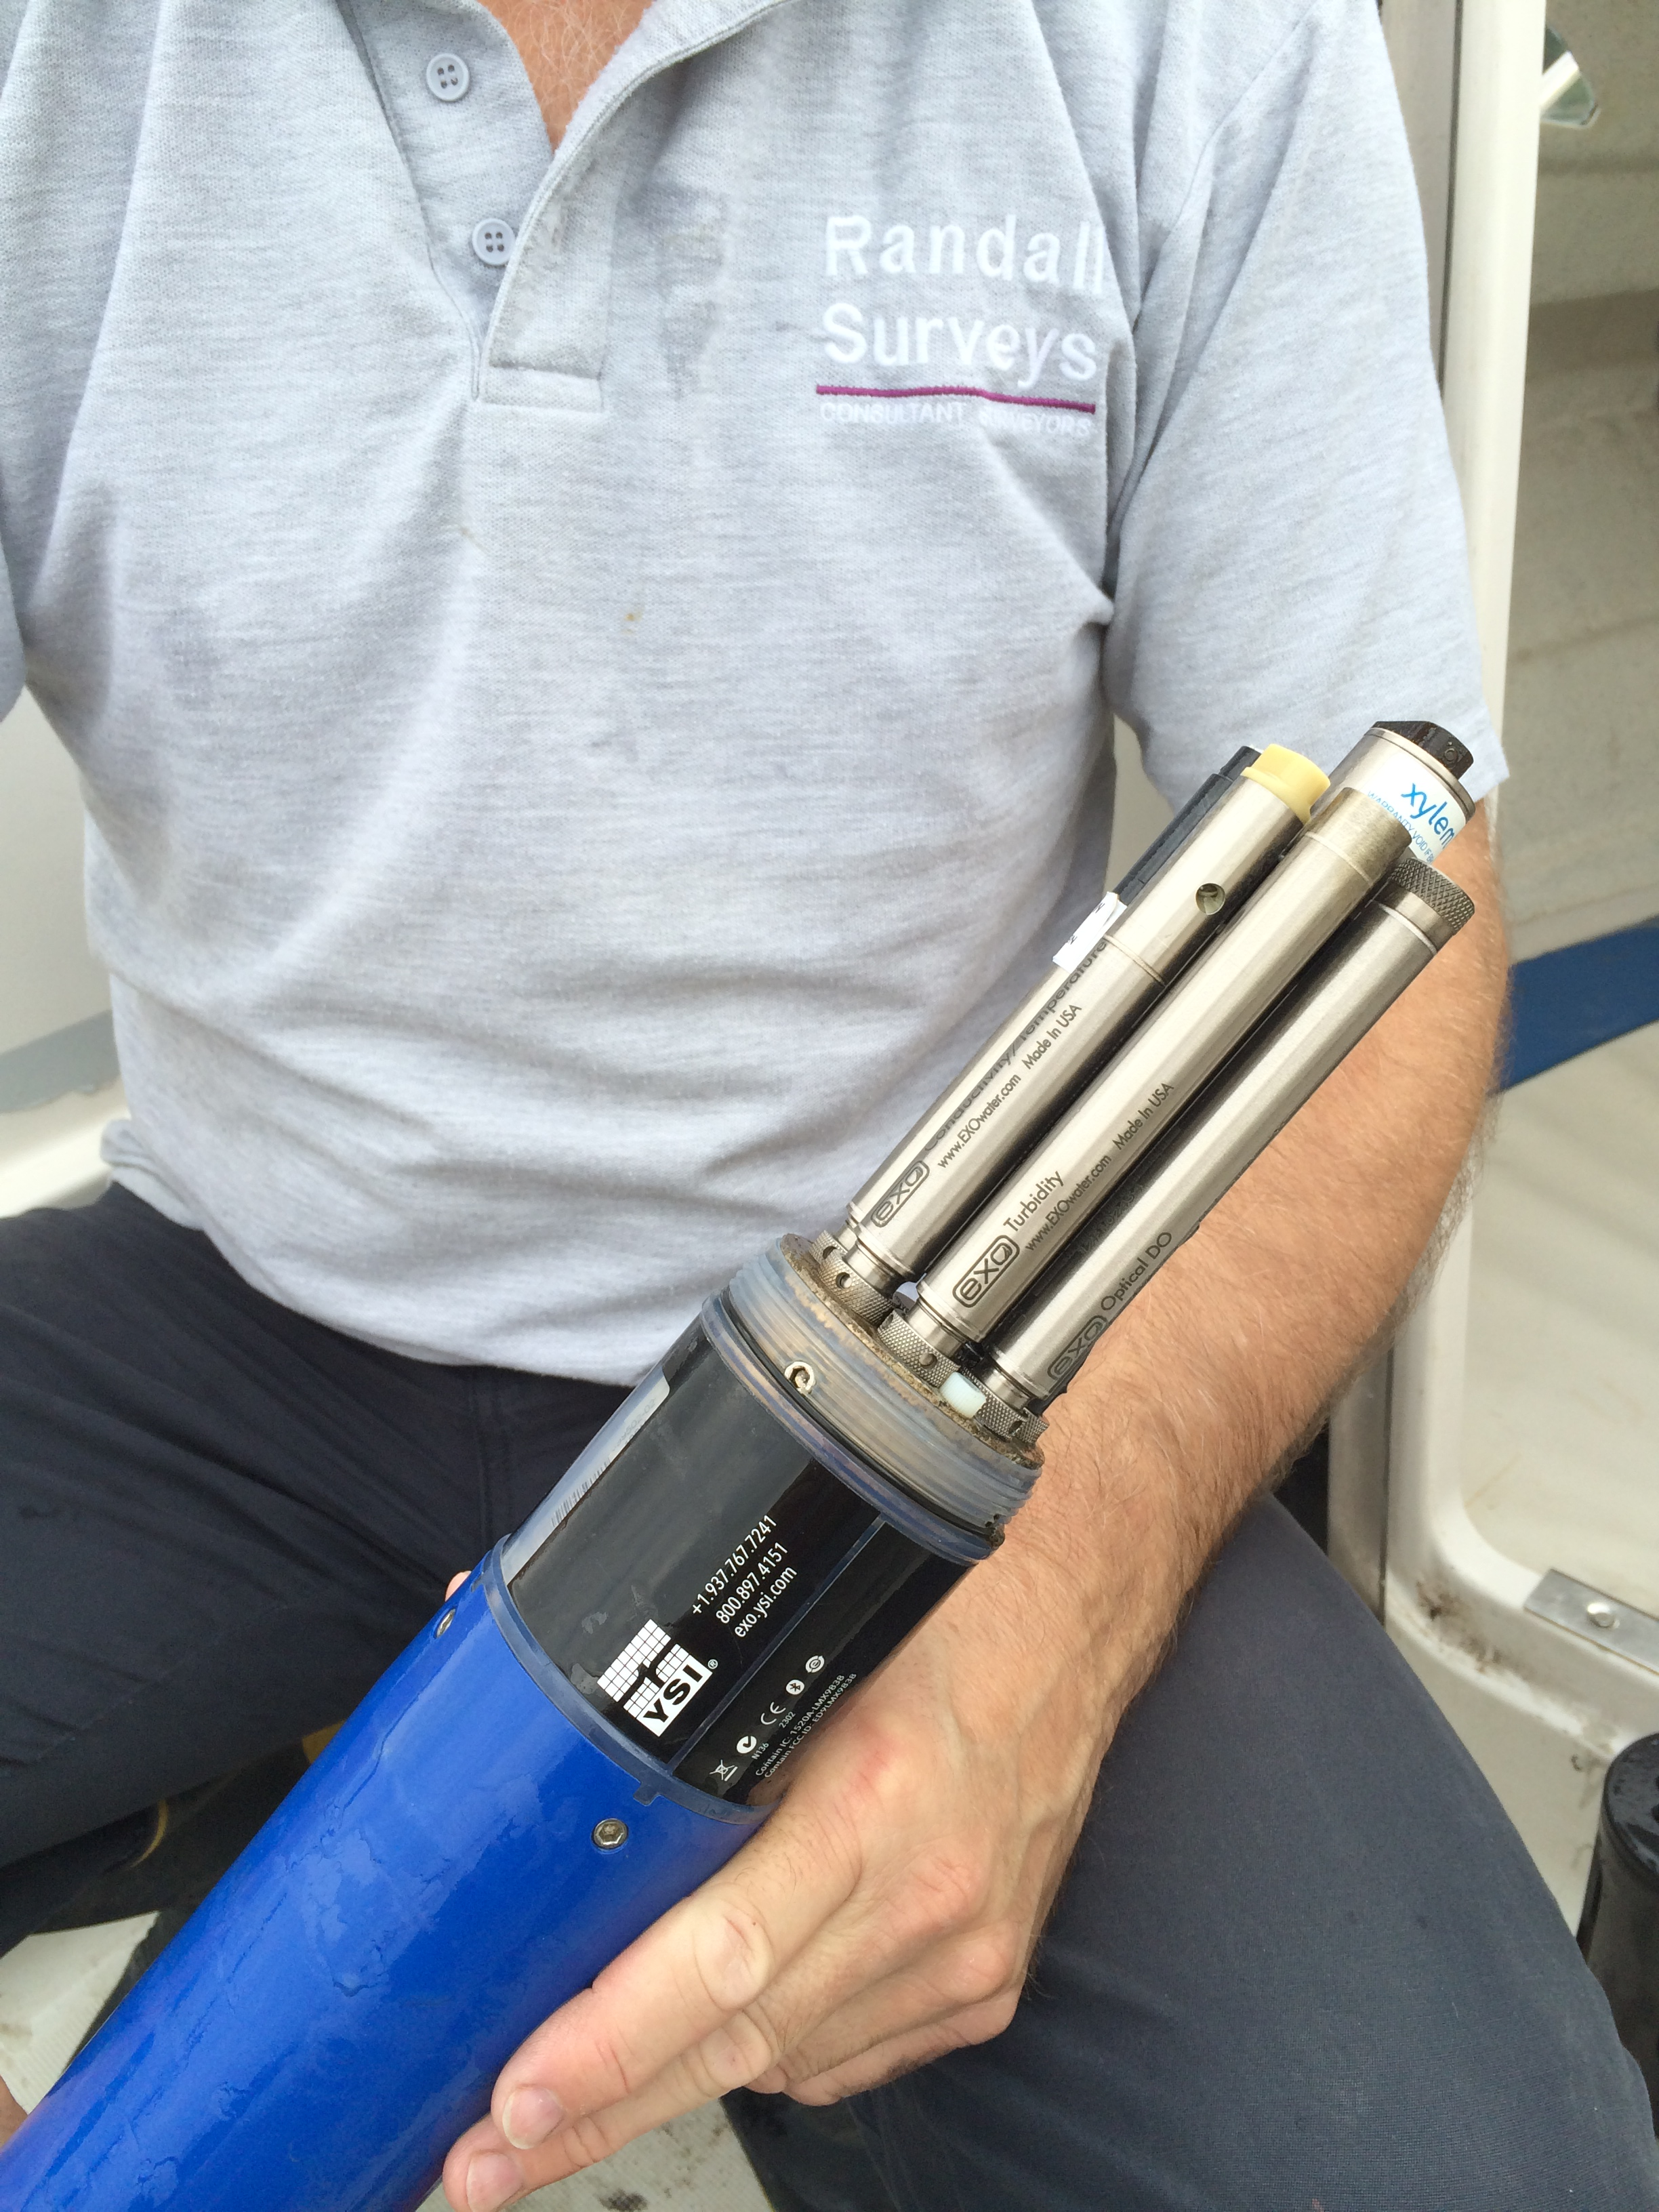 One of the YSI EXO2 sondes being readied for deployment